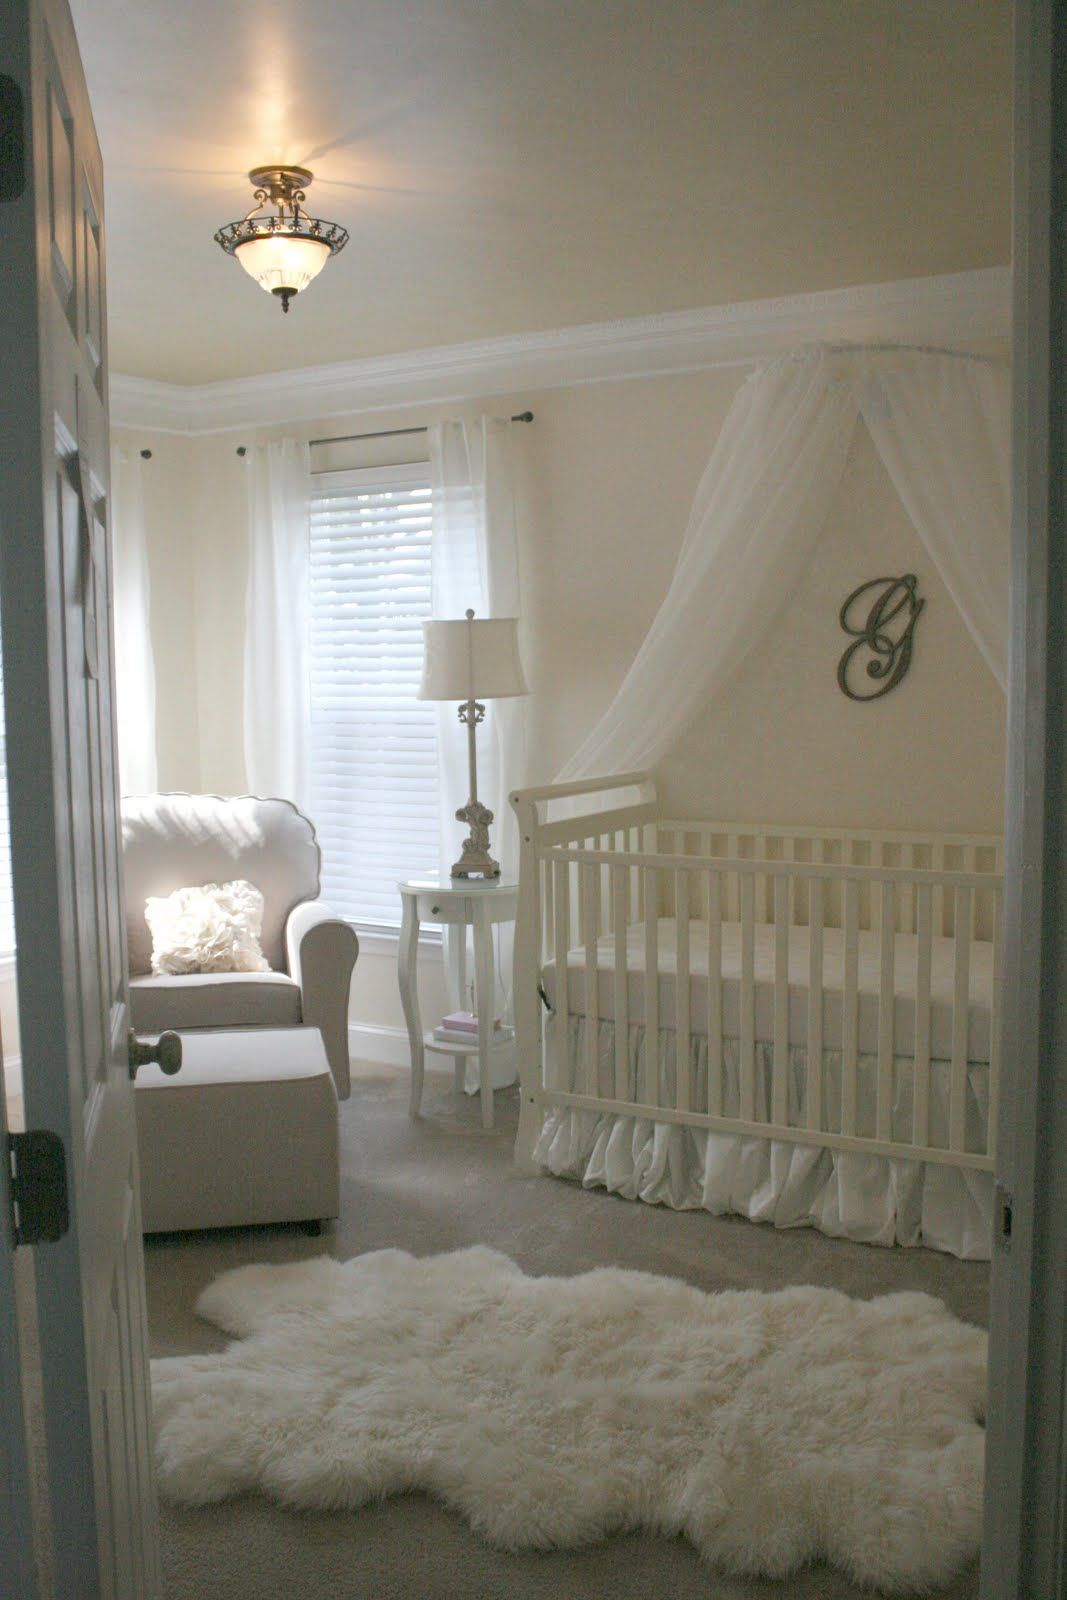 Baby cribs with canopy - I Seriously Want To Curl Up On The Rug Take A Nap Such A Canopiesbabies